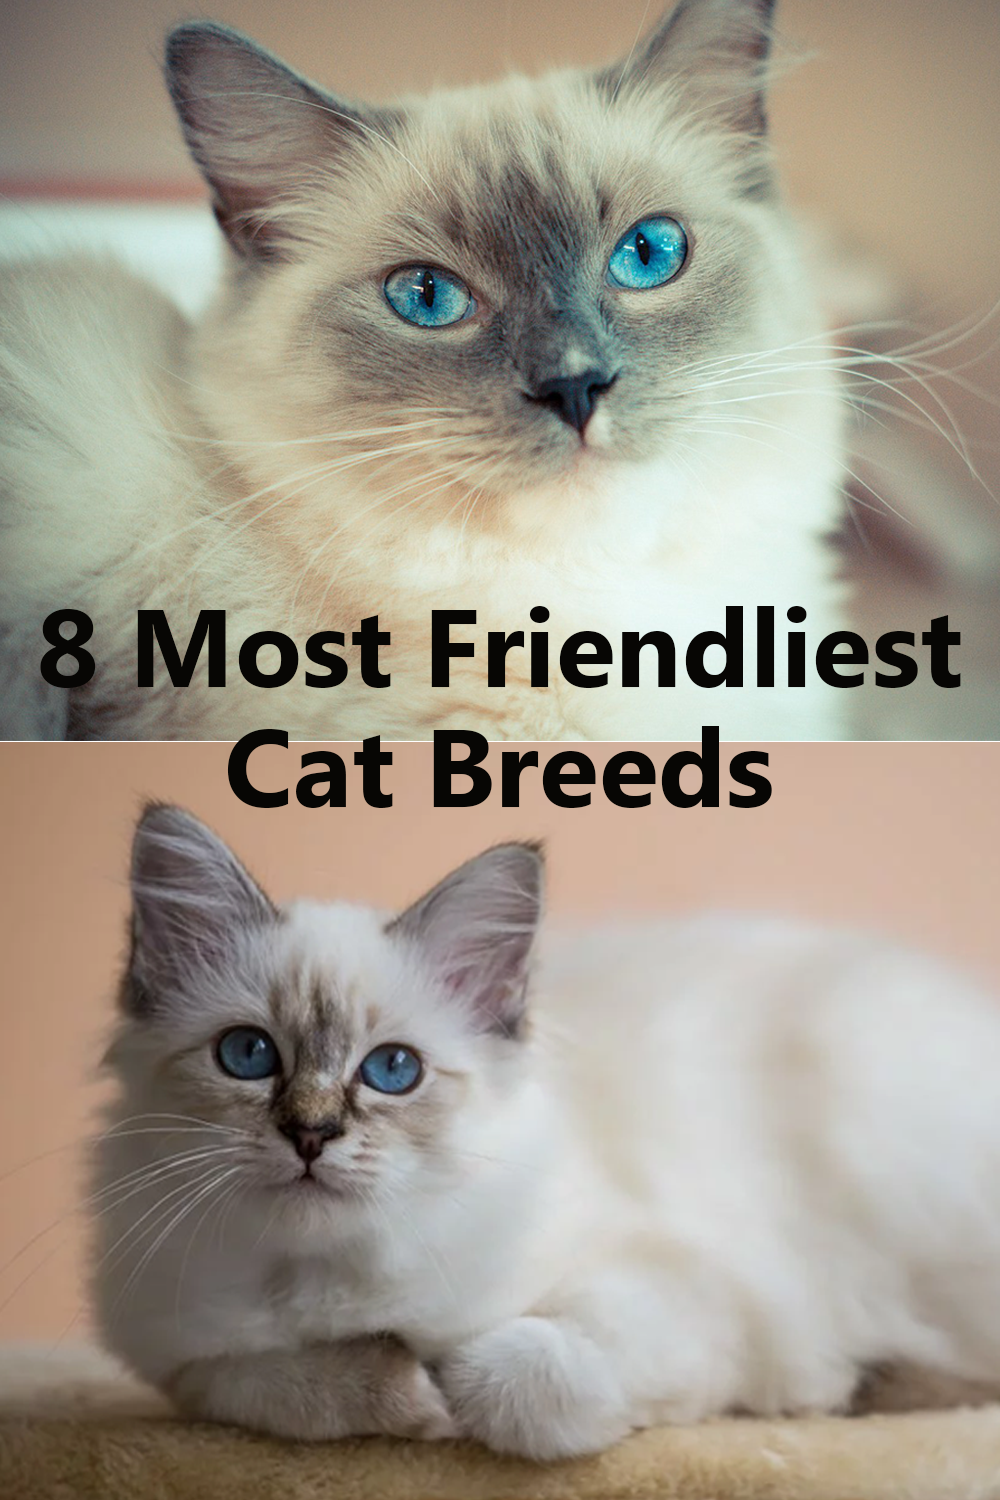 Top 6 Signs That Show Your Cat Is Happy Welfar4us in